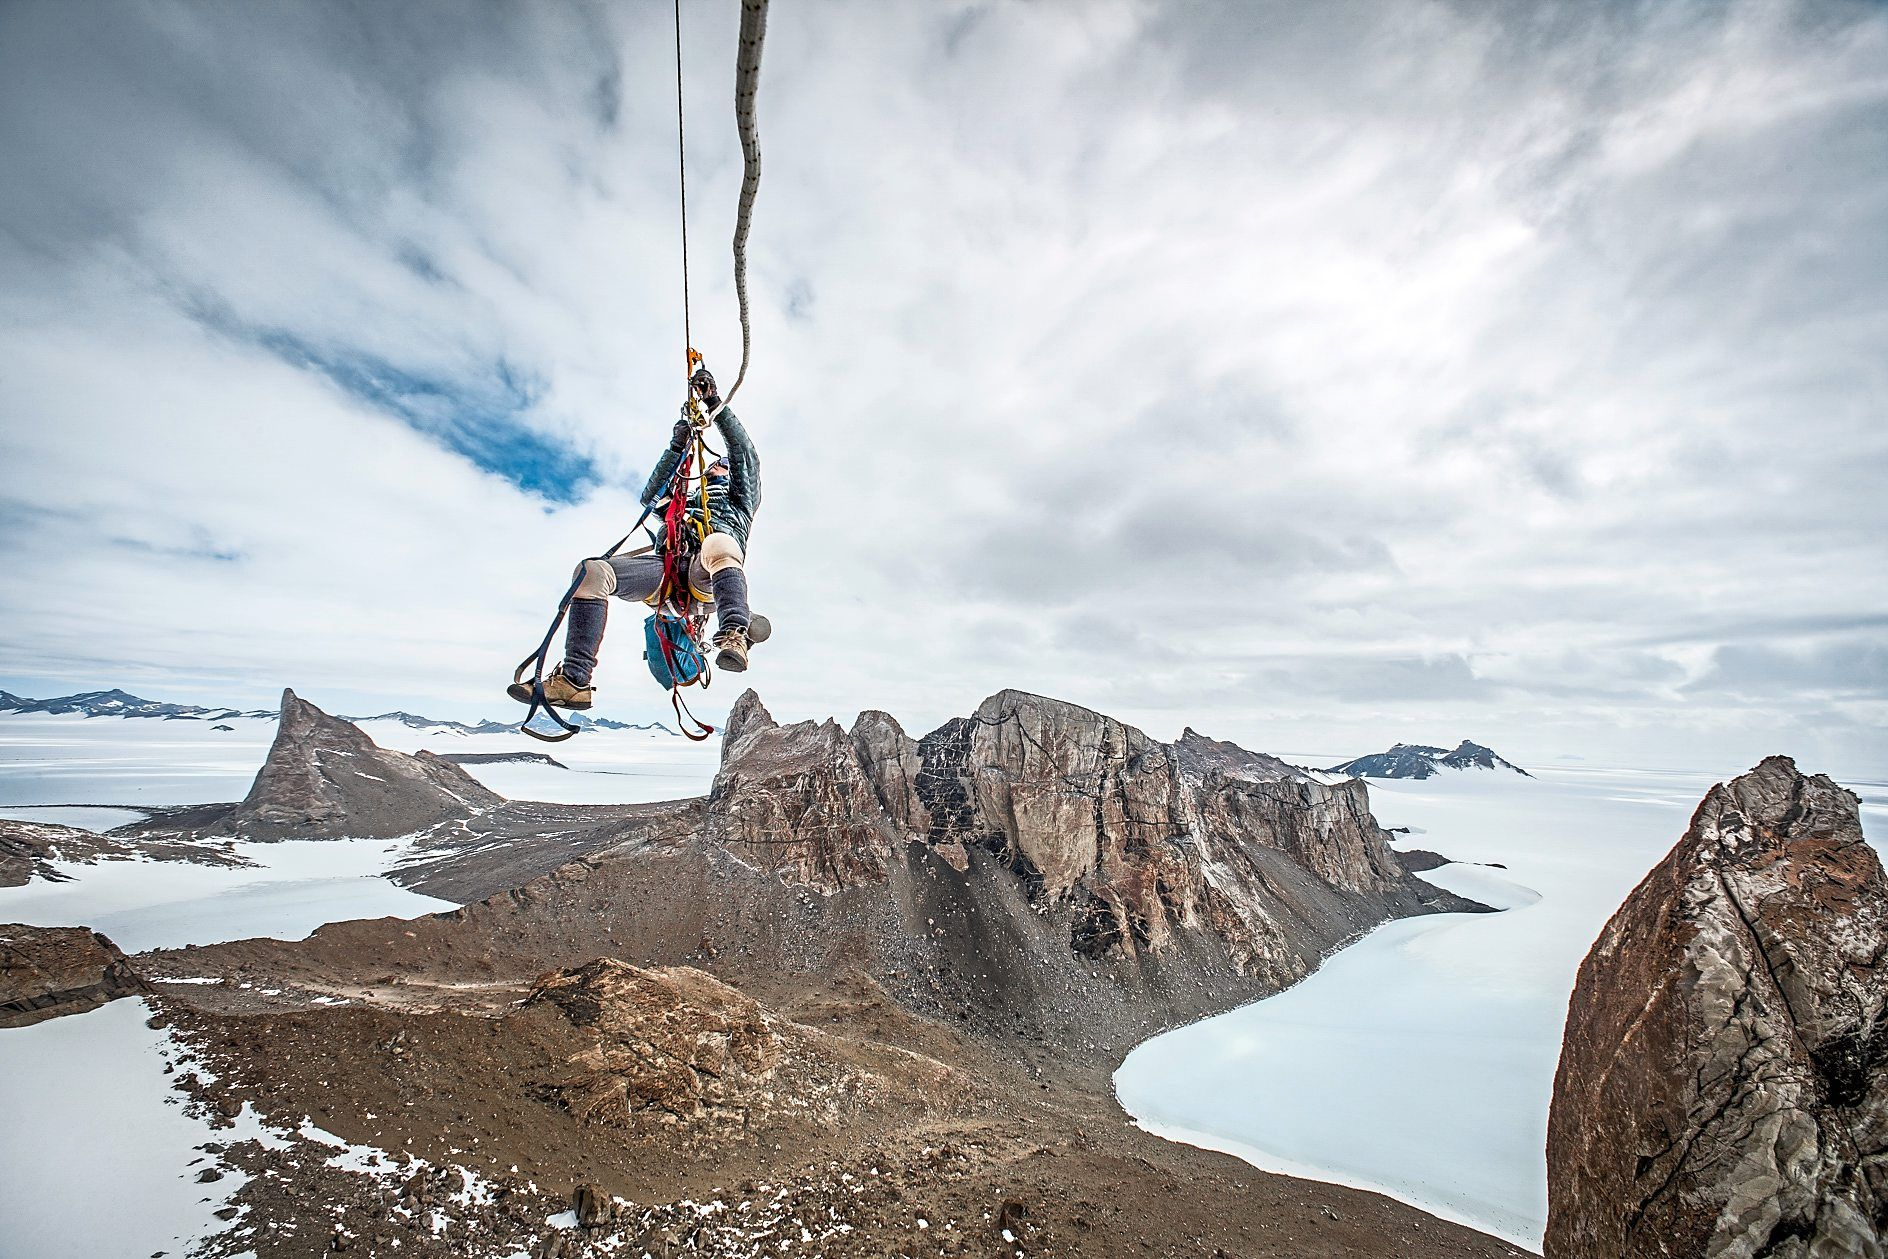 A climber ascending a fixed rope on a first ascent of Bertha's Tower in Antarctica. Photo: Cory Richards